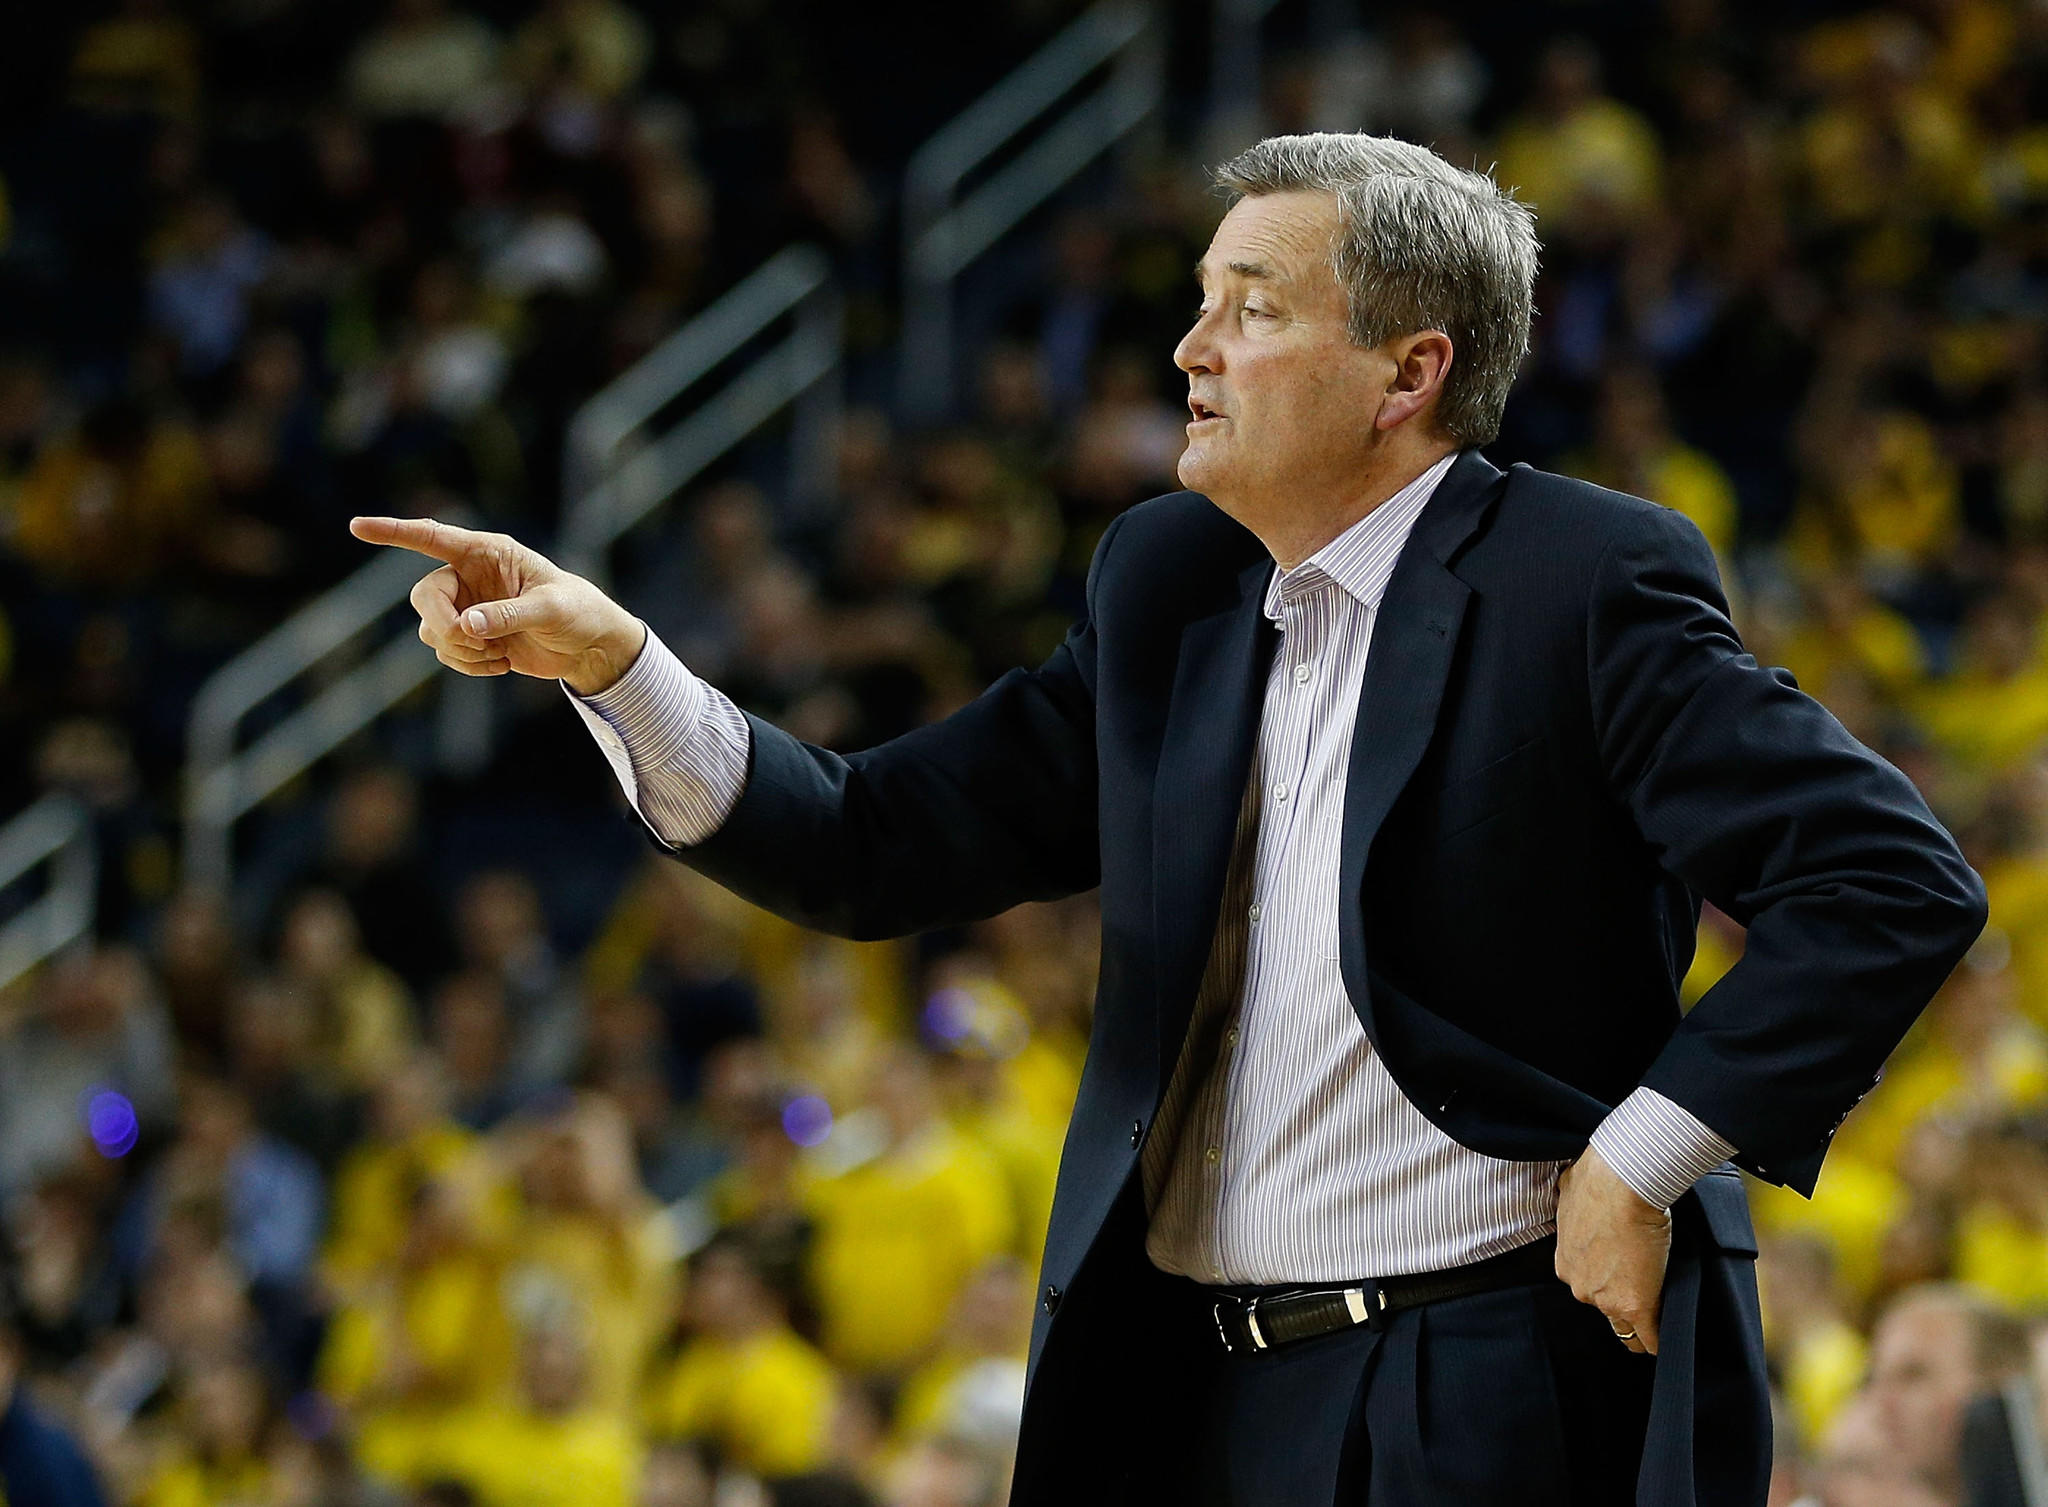 Head coach Bill Carmody of the Northwestern Wildcats points something out from the bench while playing the Michigan Wolverines at Crisler Center January 2013 in Ann Arbor, Michigan.